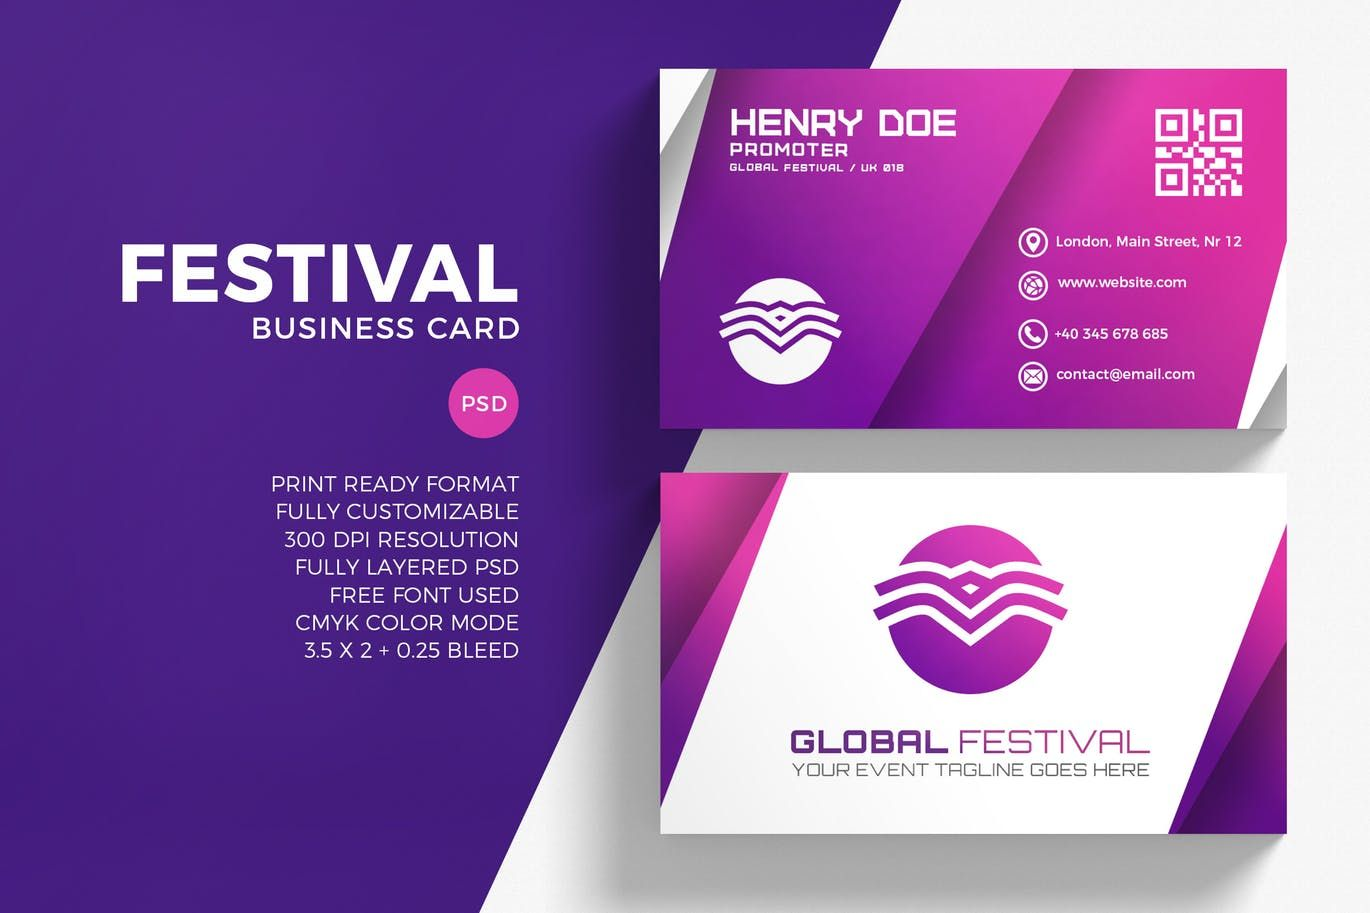 Festival Business Card Template Psd  Business Card Templates